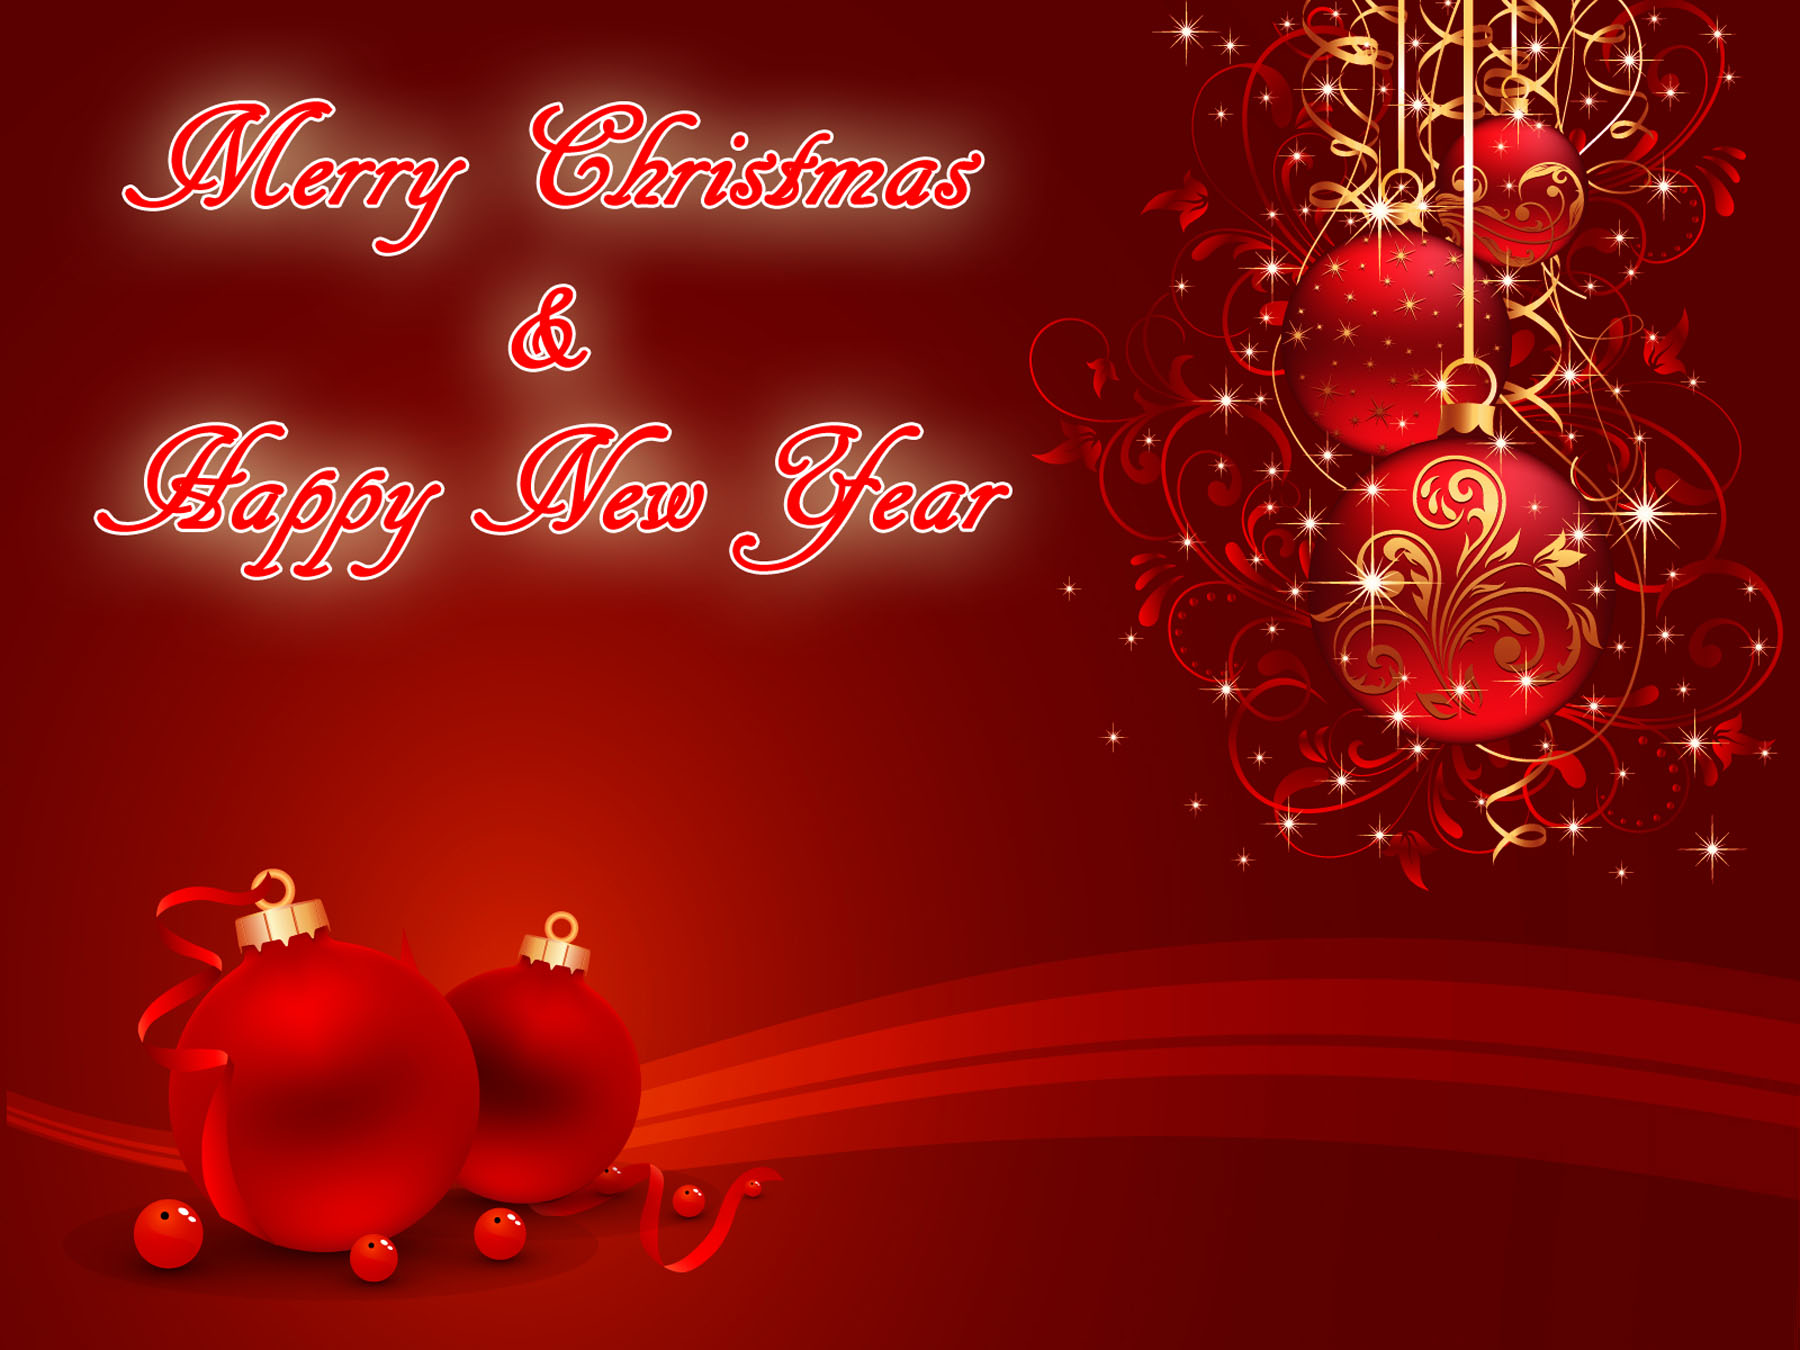 New Year 2014 Christmas 2013 Greeting Cards E Cards Wallpapers